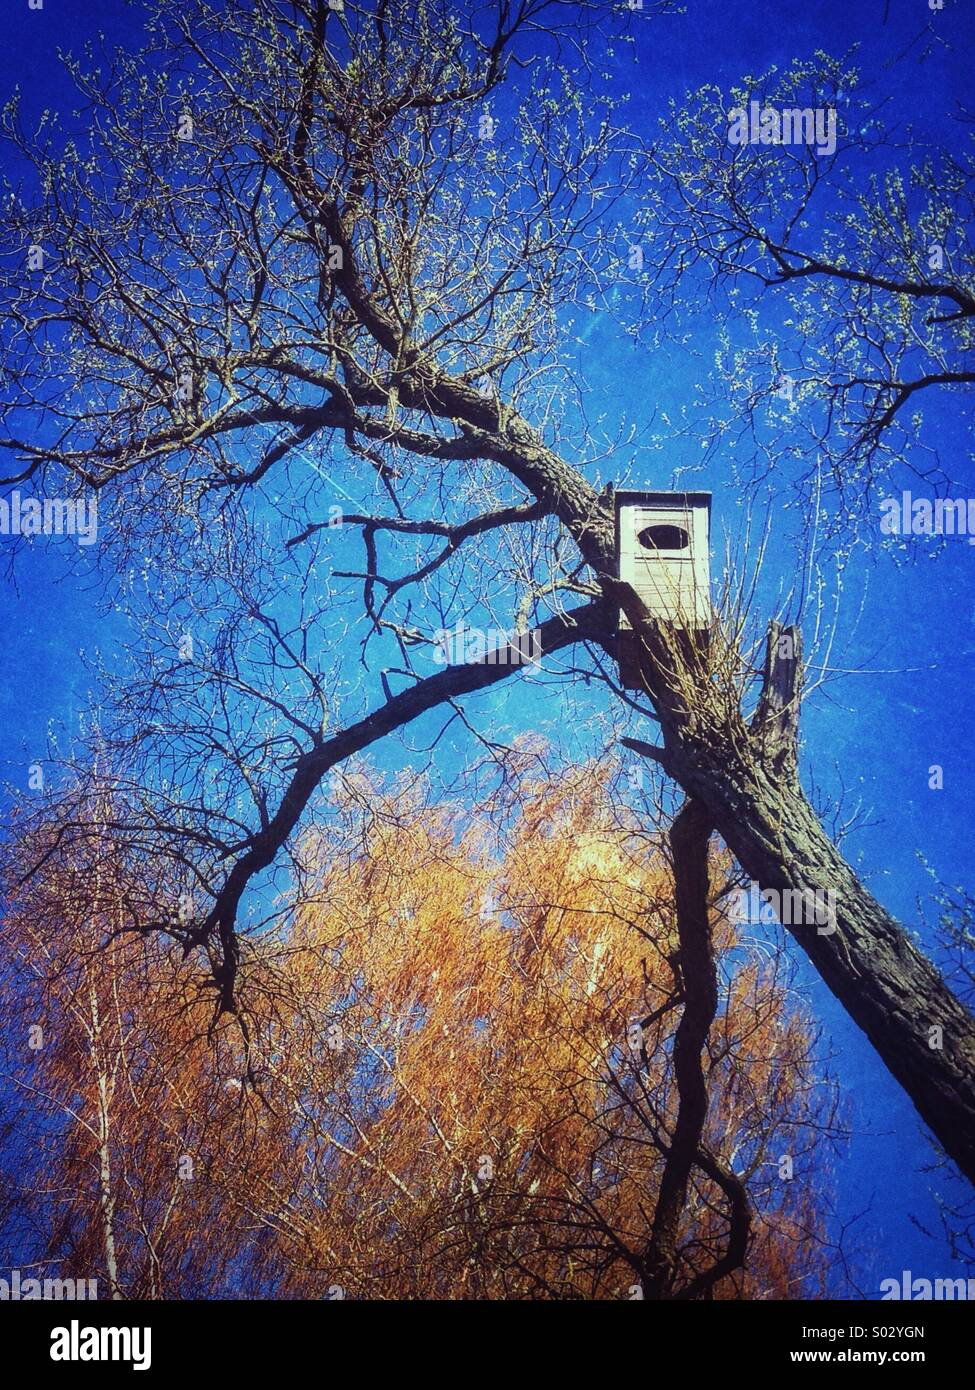 Nesting-box, attached to the tree, waiting for the birds Stock Photo